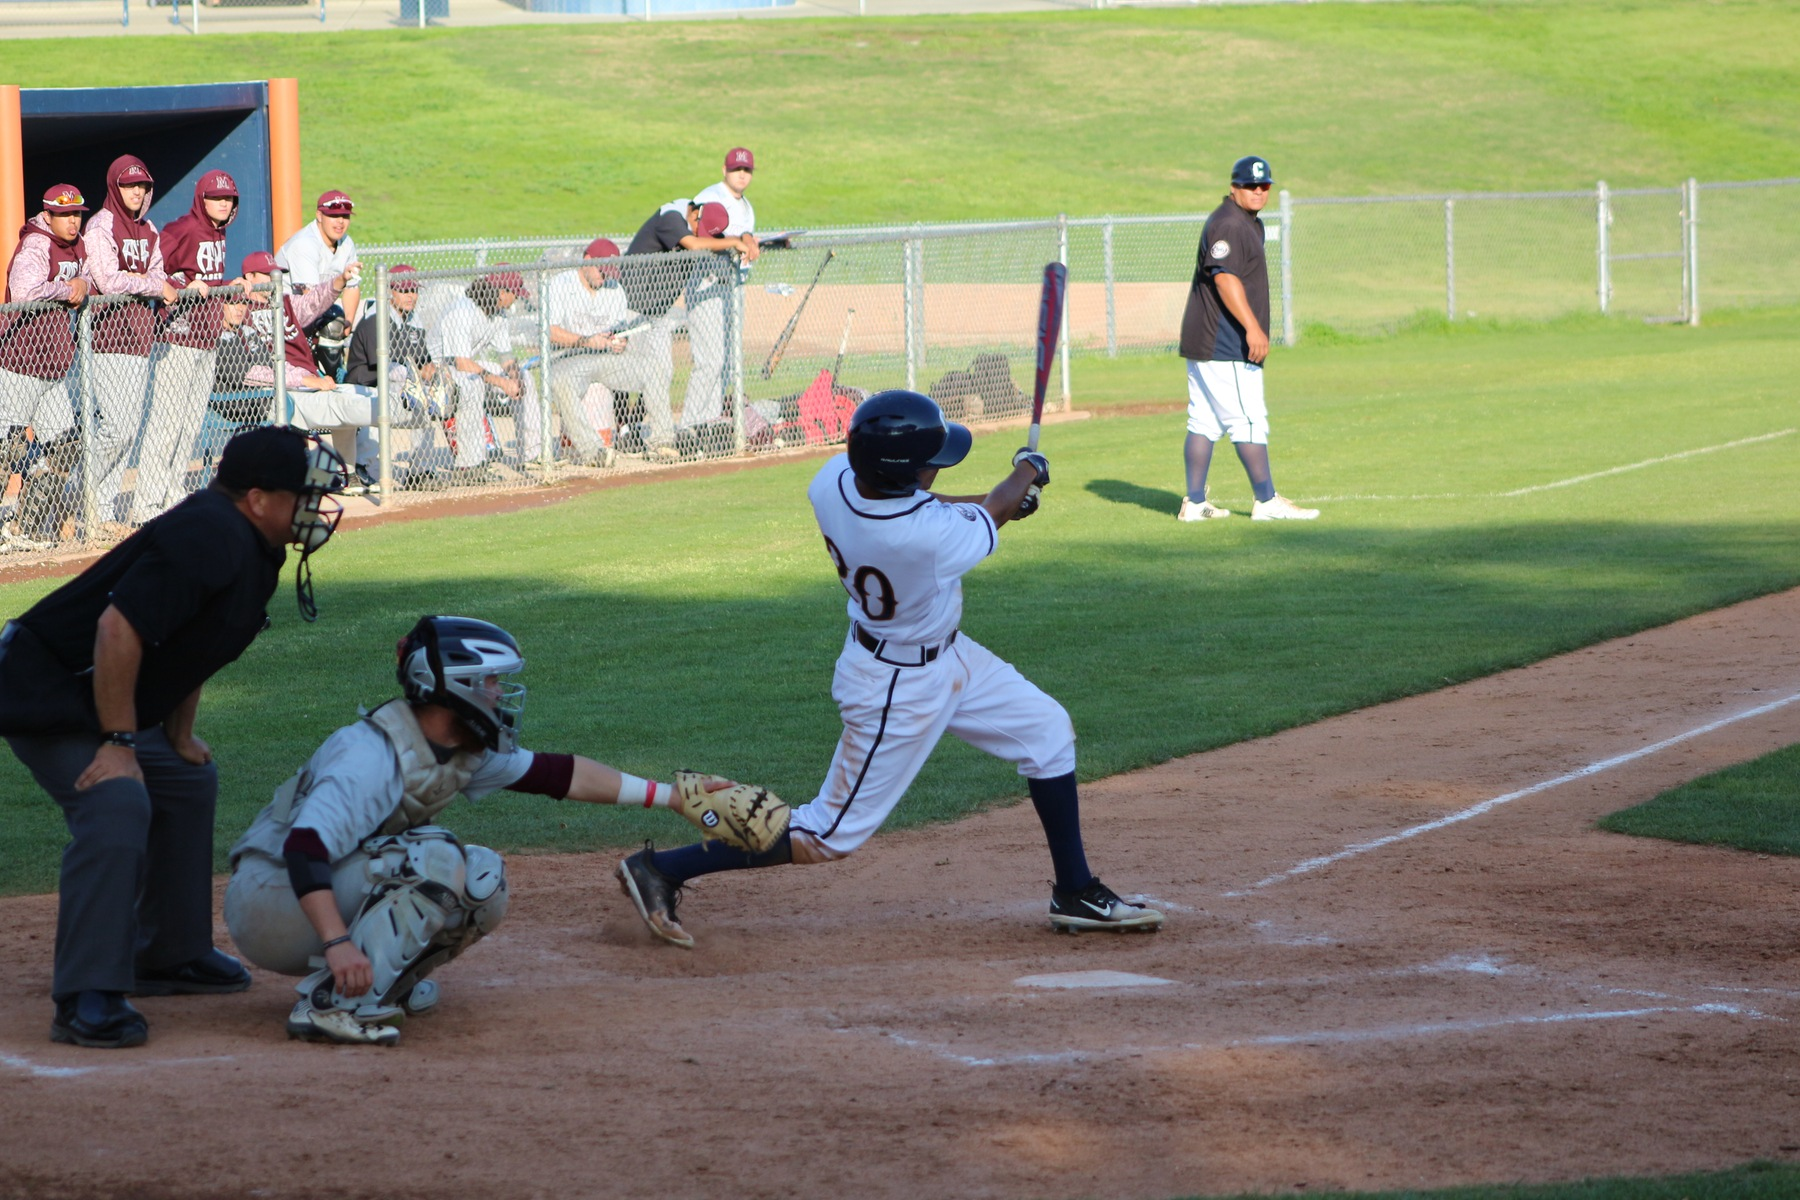 Donvyn Curiel pulls a line drive to left field.